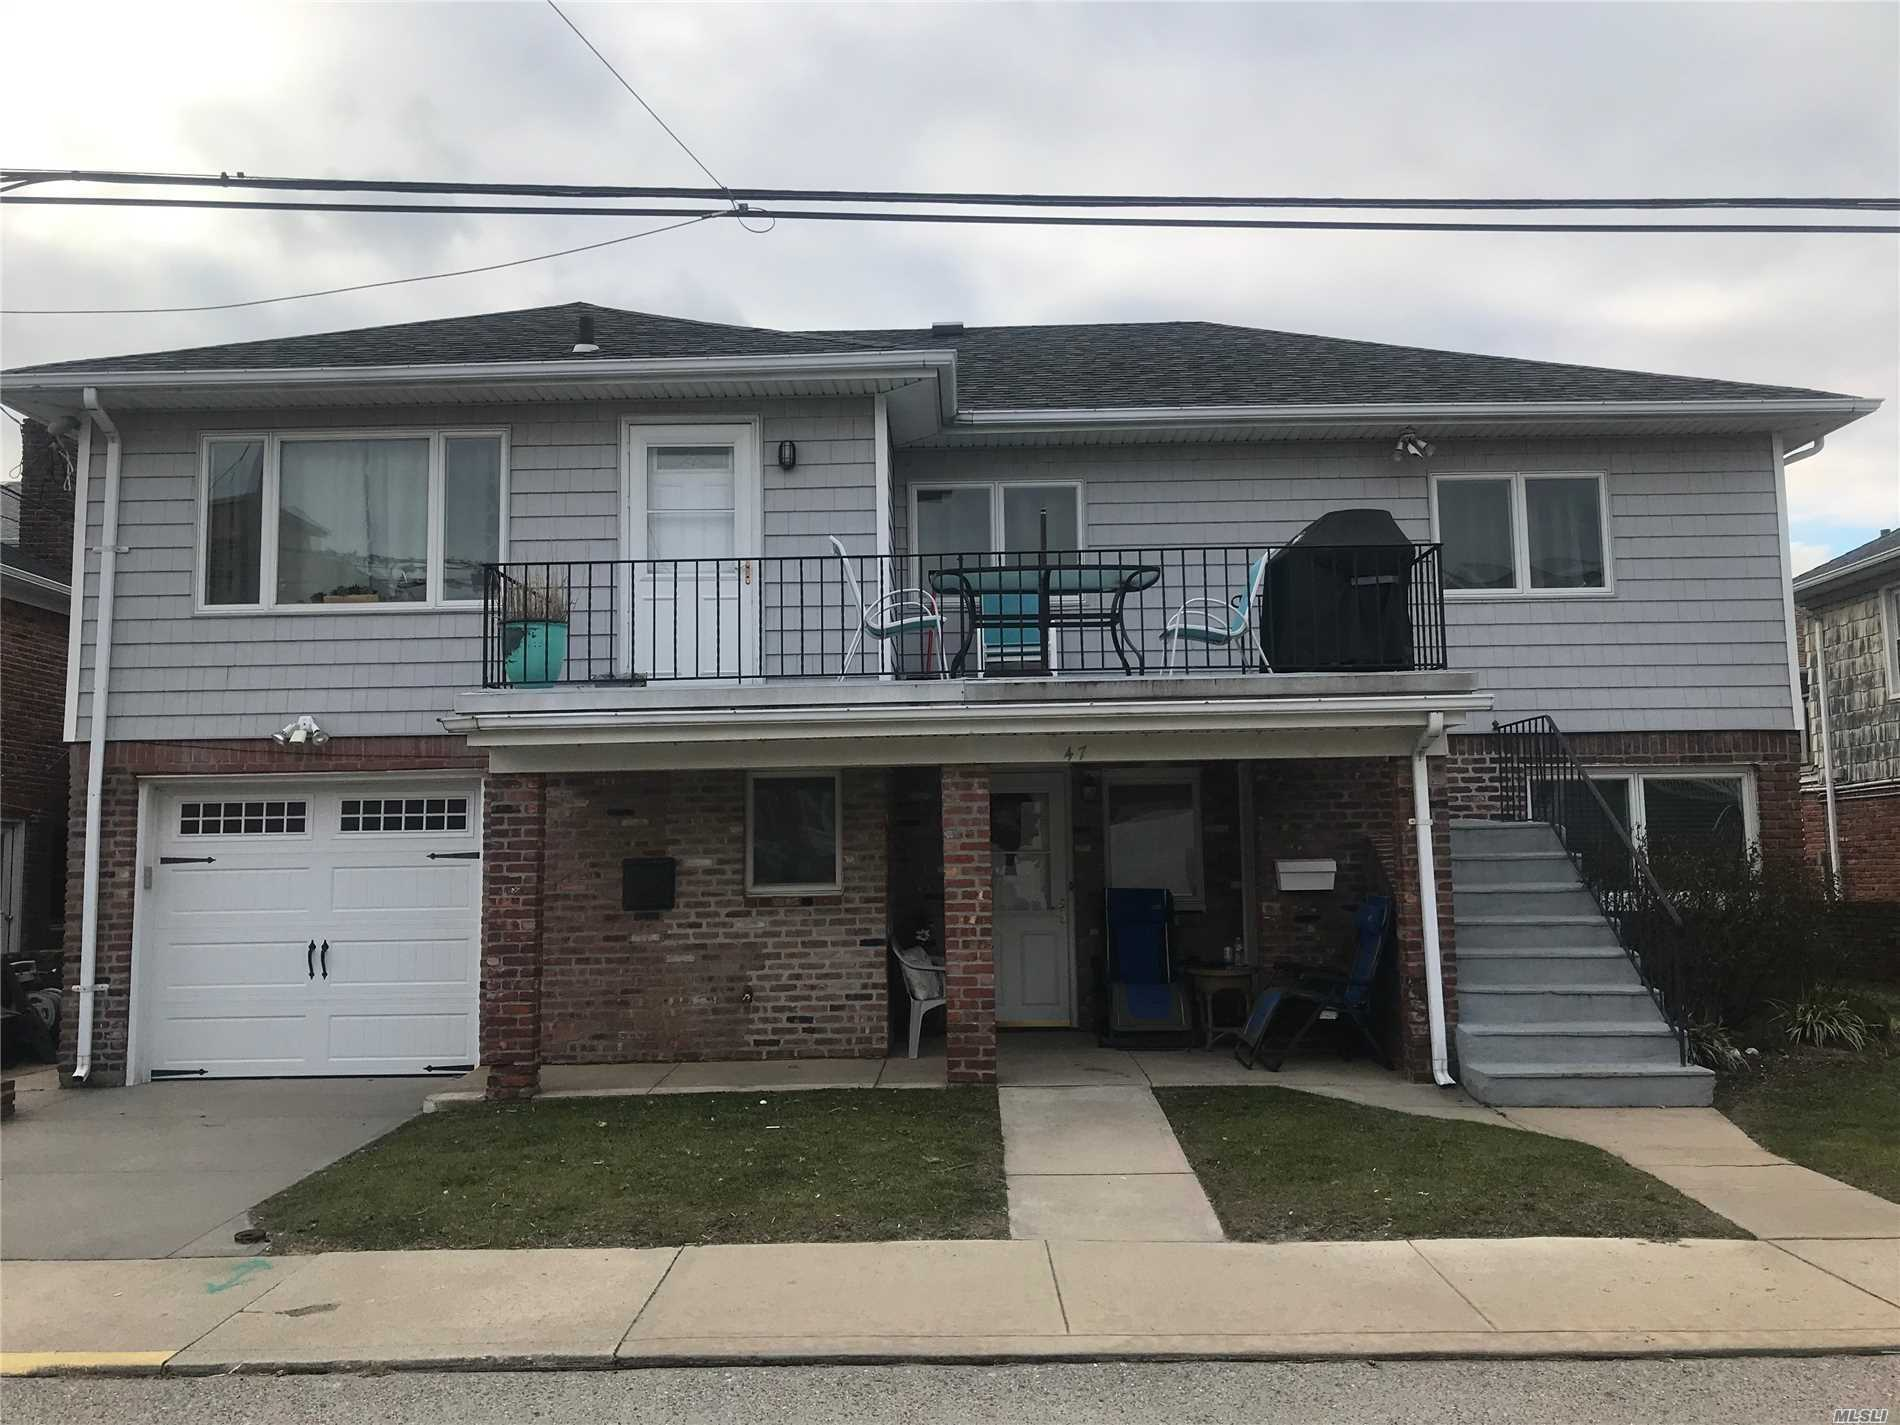 East Atlantic Beach: Beachside 2br walk in apt with formal dining room, large living room, outdoor shared use of patio, 1 car driveway, private beach with full Free access. 1mos security no pets. All credit reports and income verification.